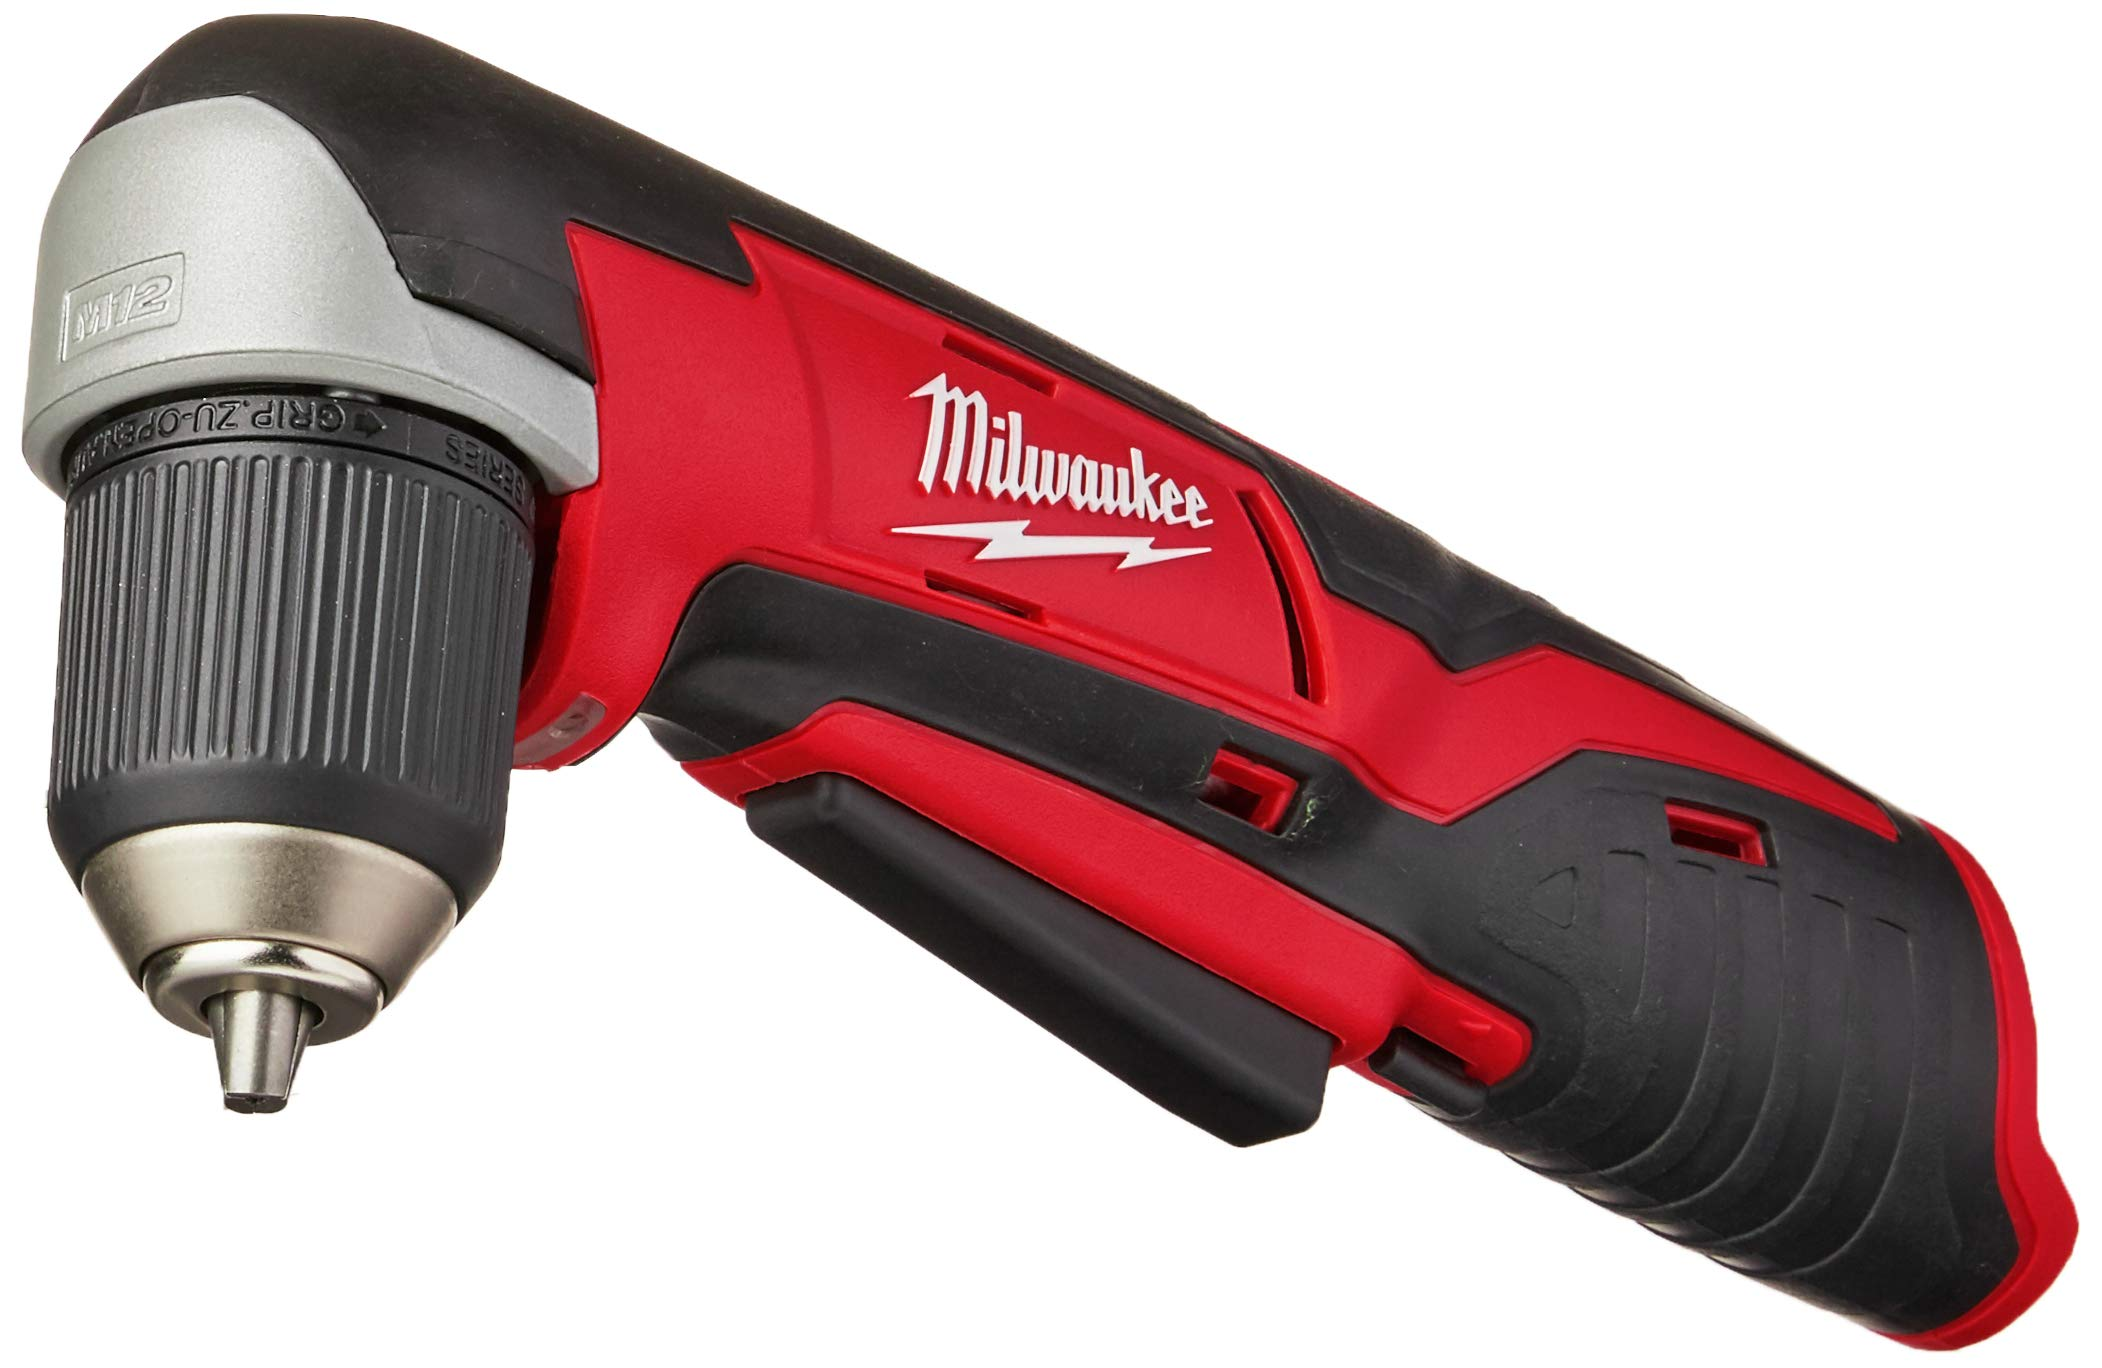 Milwaukee 2415-20 M12 12-Volt Lithium-Ion Cordless Right Angle Drill, 3/4 In, Bare Tool, Medium